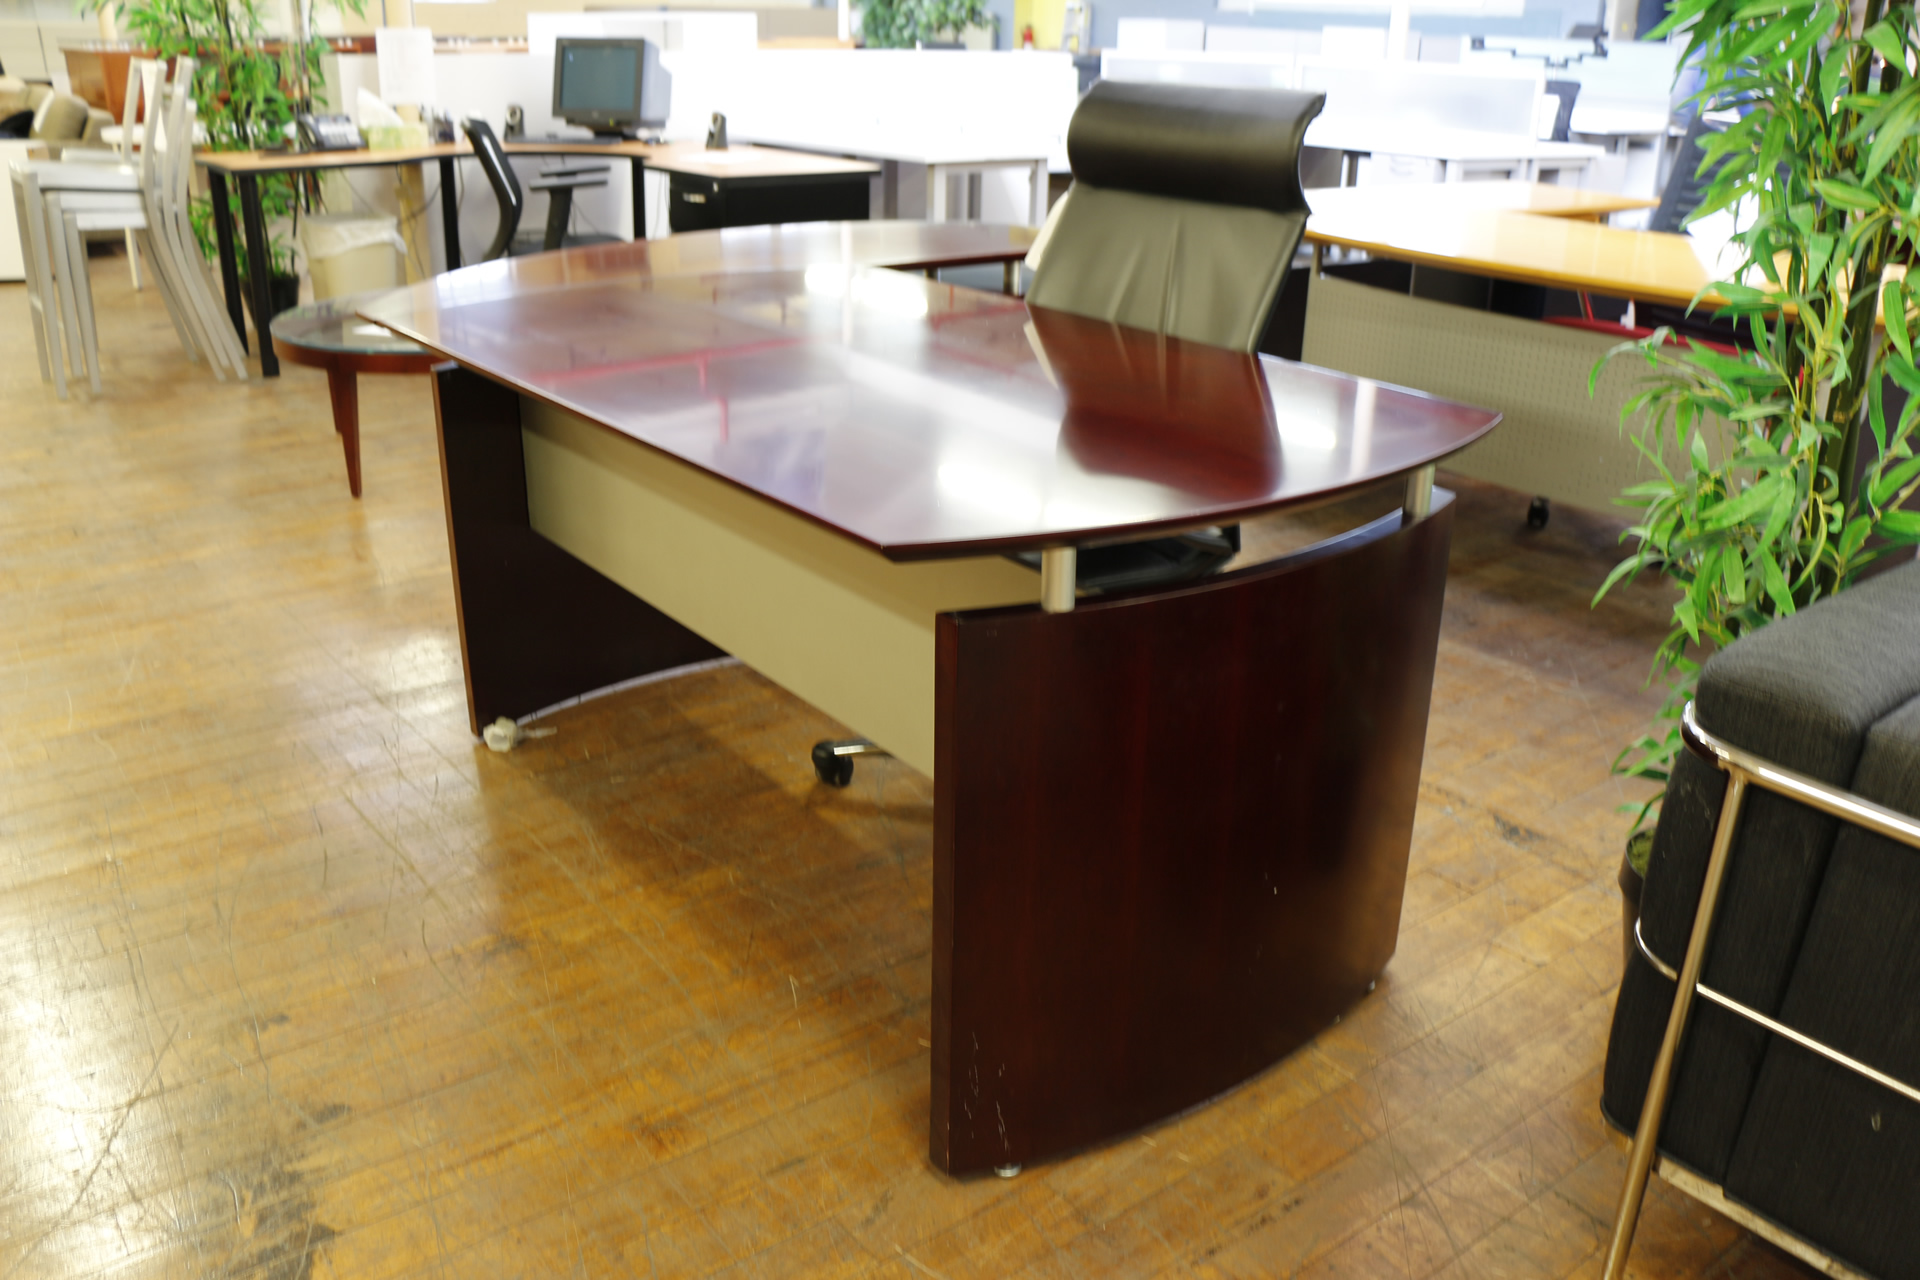 peartreeofficefurniture_peartreeofficefurniture_mg_4967.jpg